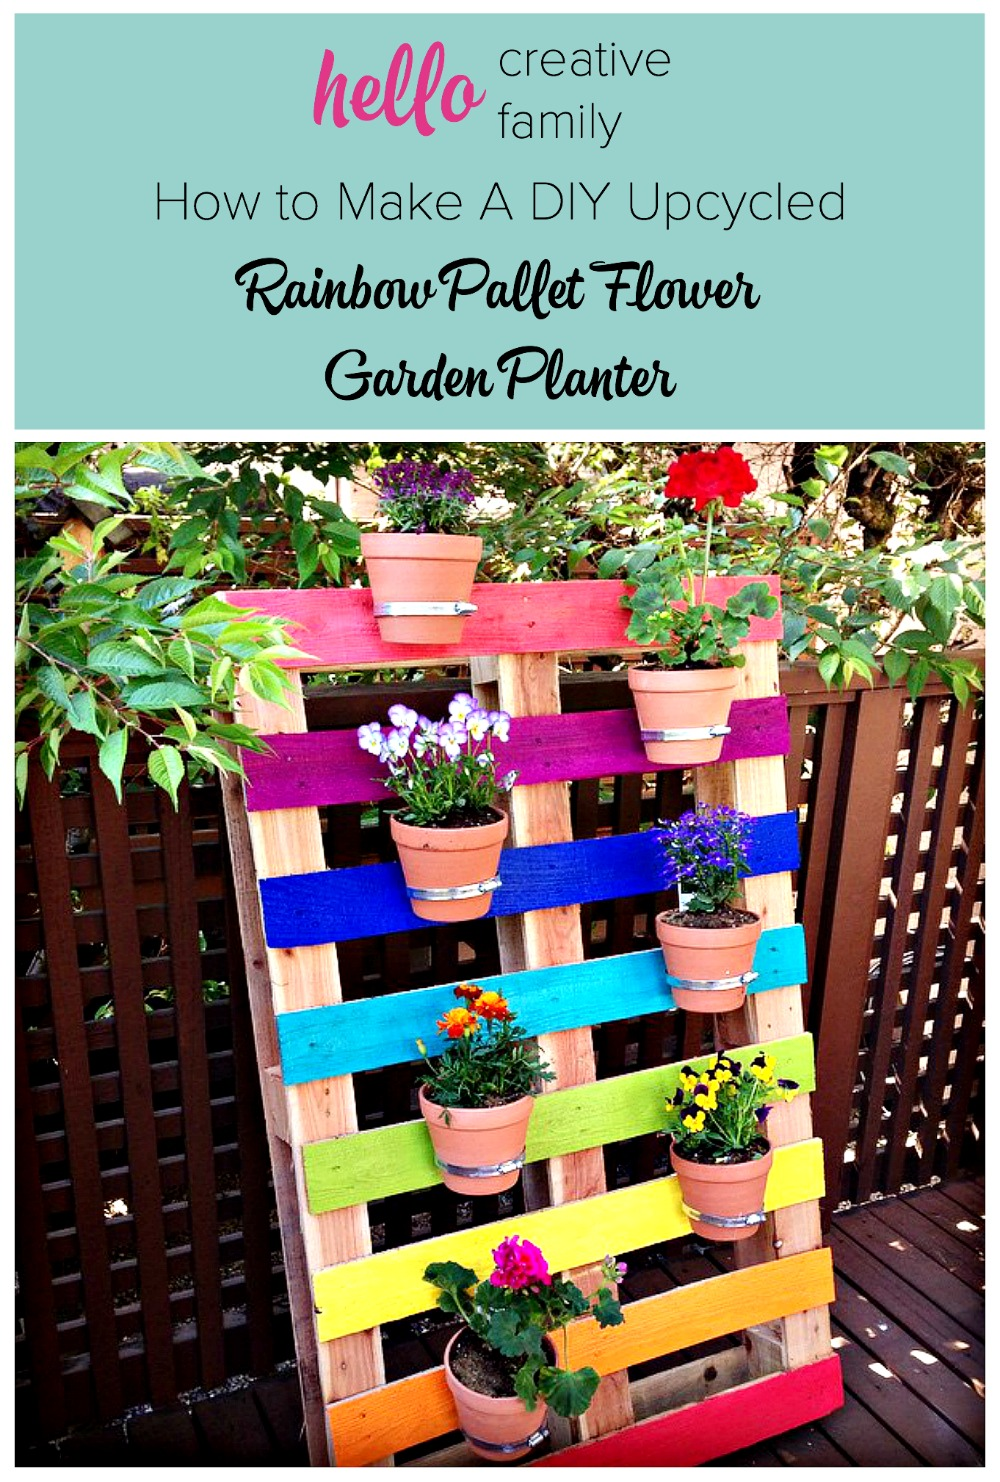 Fun Diy Projects Part - 29: 27 Rainbow Crafts, DIY Projects And Recipes Your Family Will Love